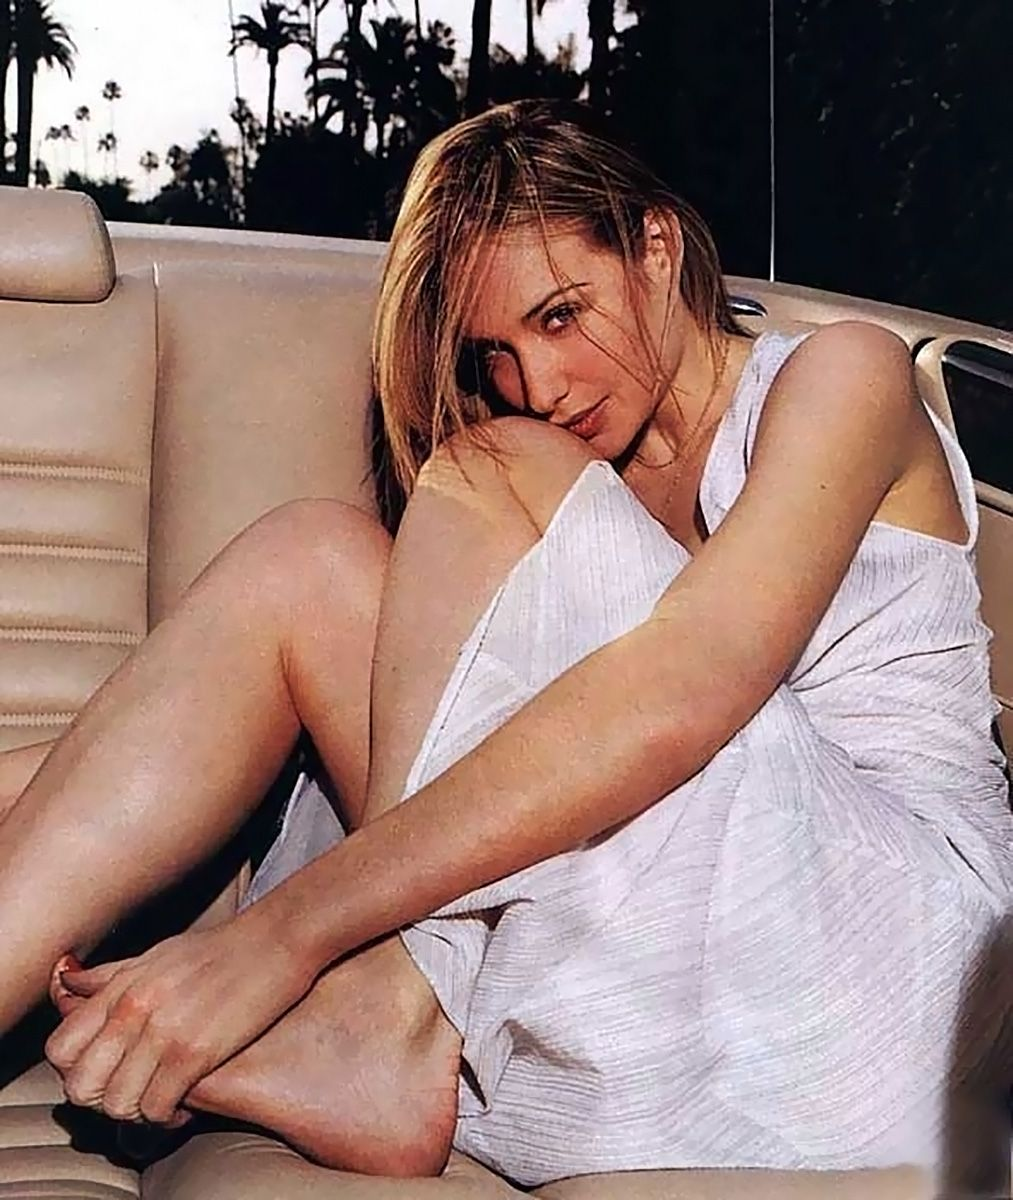 0226175619844 073 Claire Forlani Feet Hot Sexy Cleavage 50 T